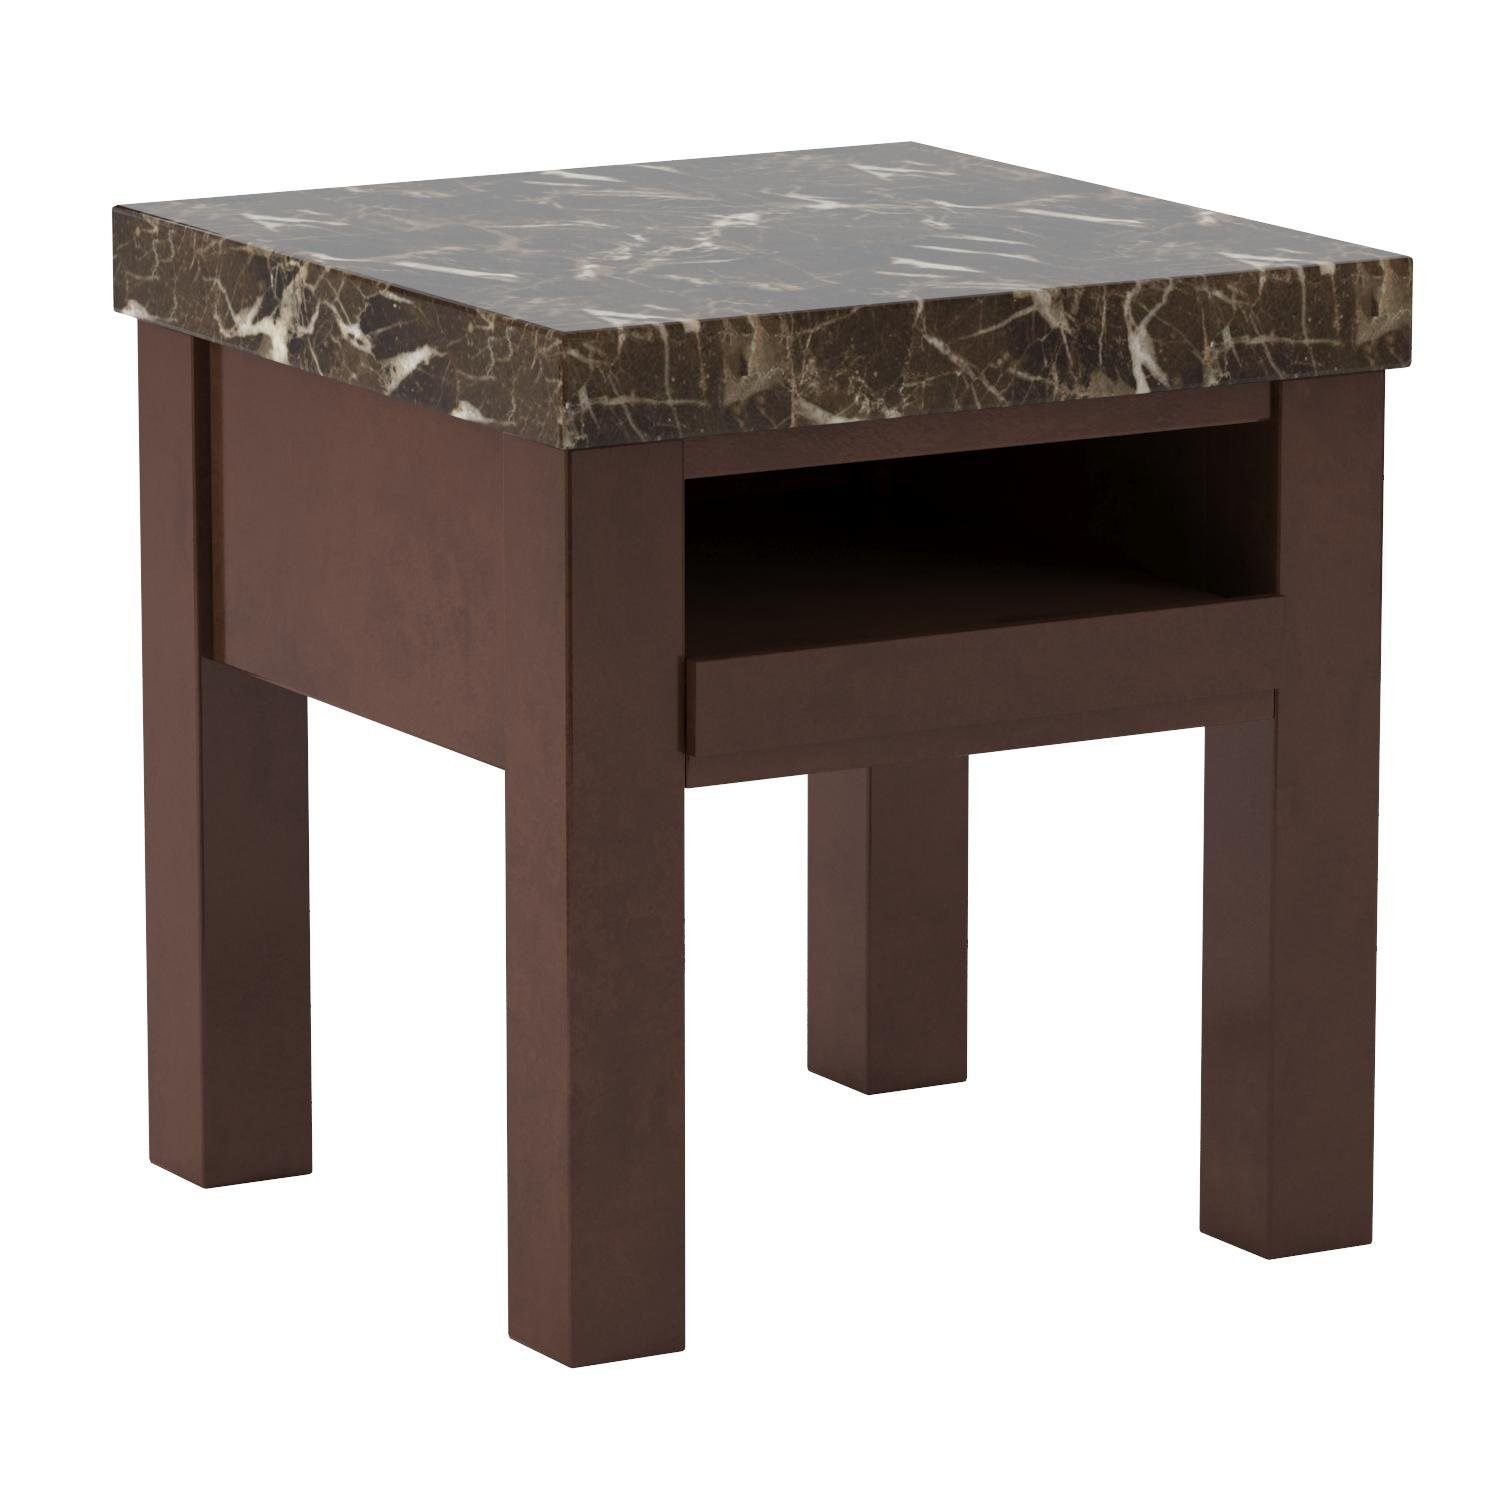 Ashley Furniture Signature Design - Kraleene End Table - Pull Out Tray with USB Ports - Contemporary - Dark Brown by Signature Design by Ashley (Image #6)